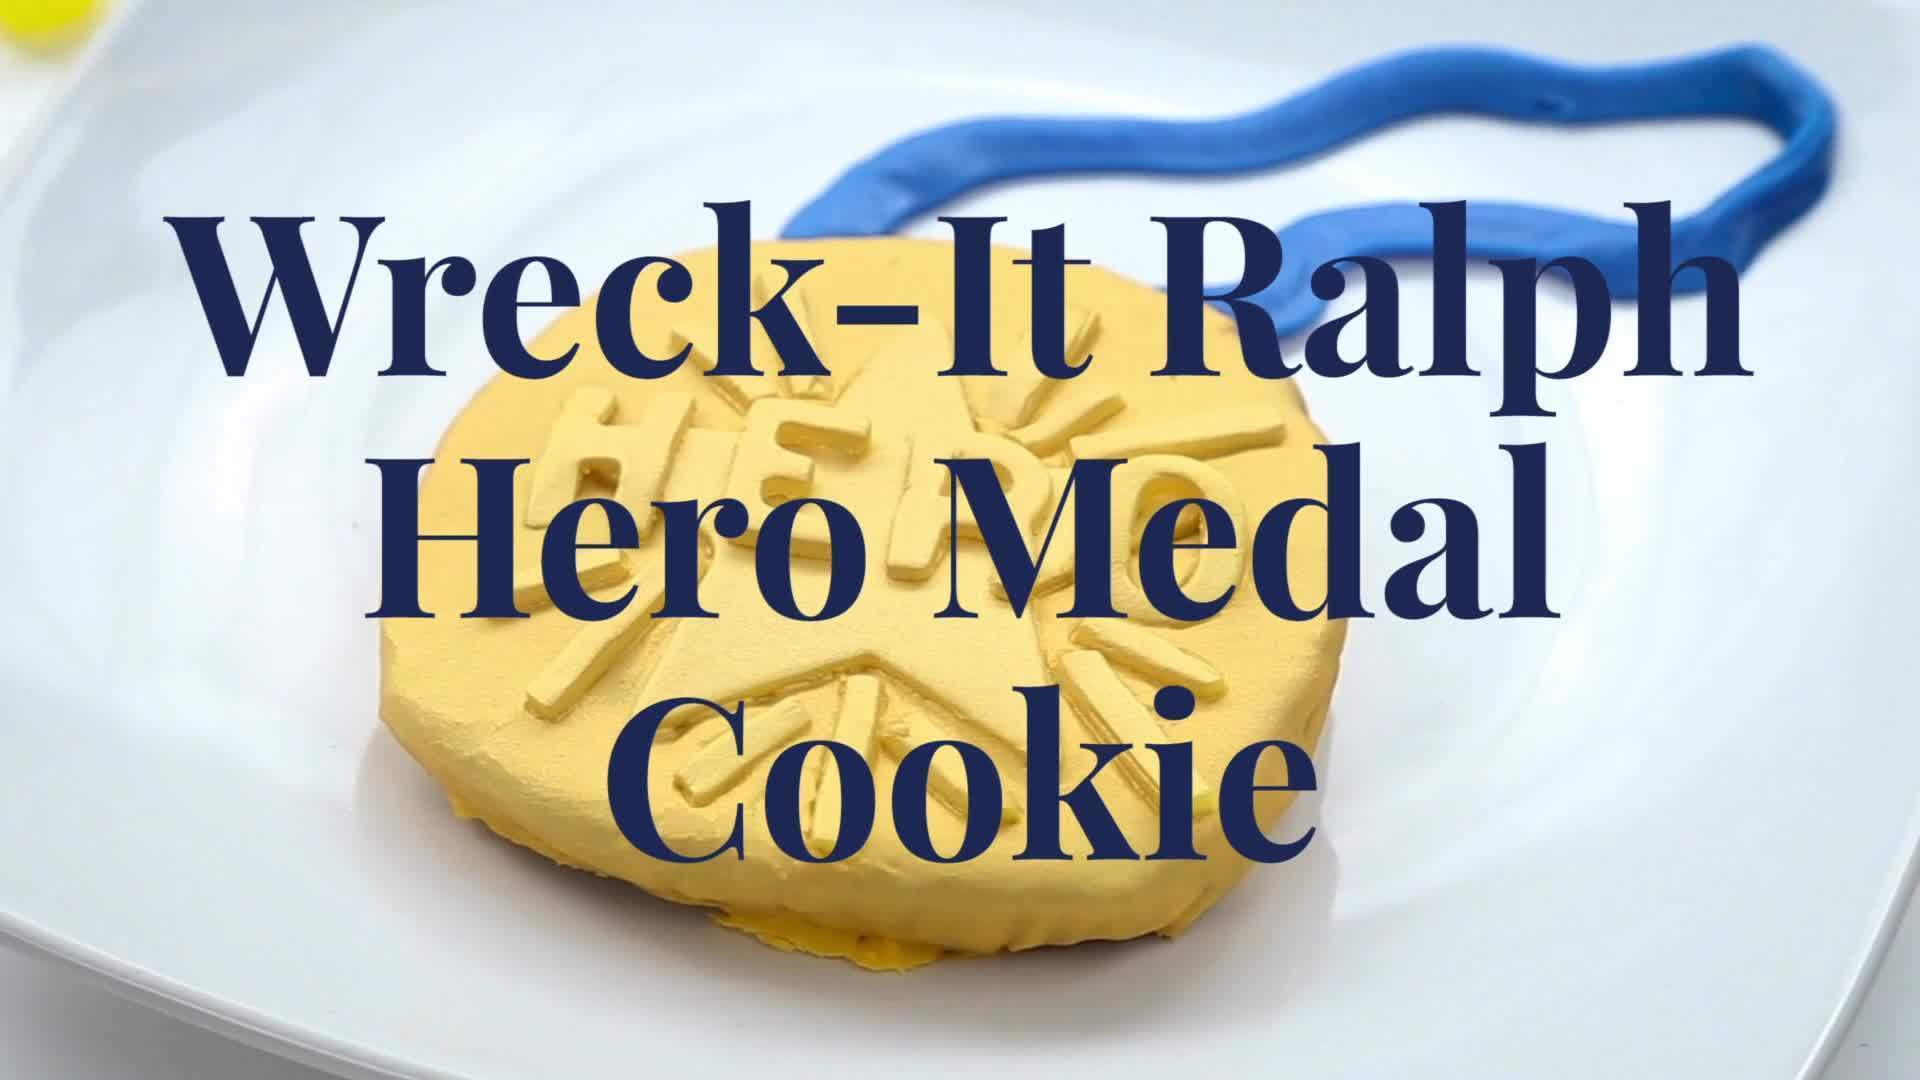 Wreck-It Ralph Hero Medal Cookie | Dishes by Disney